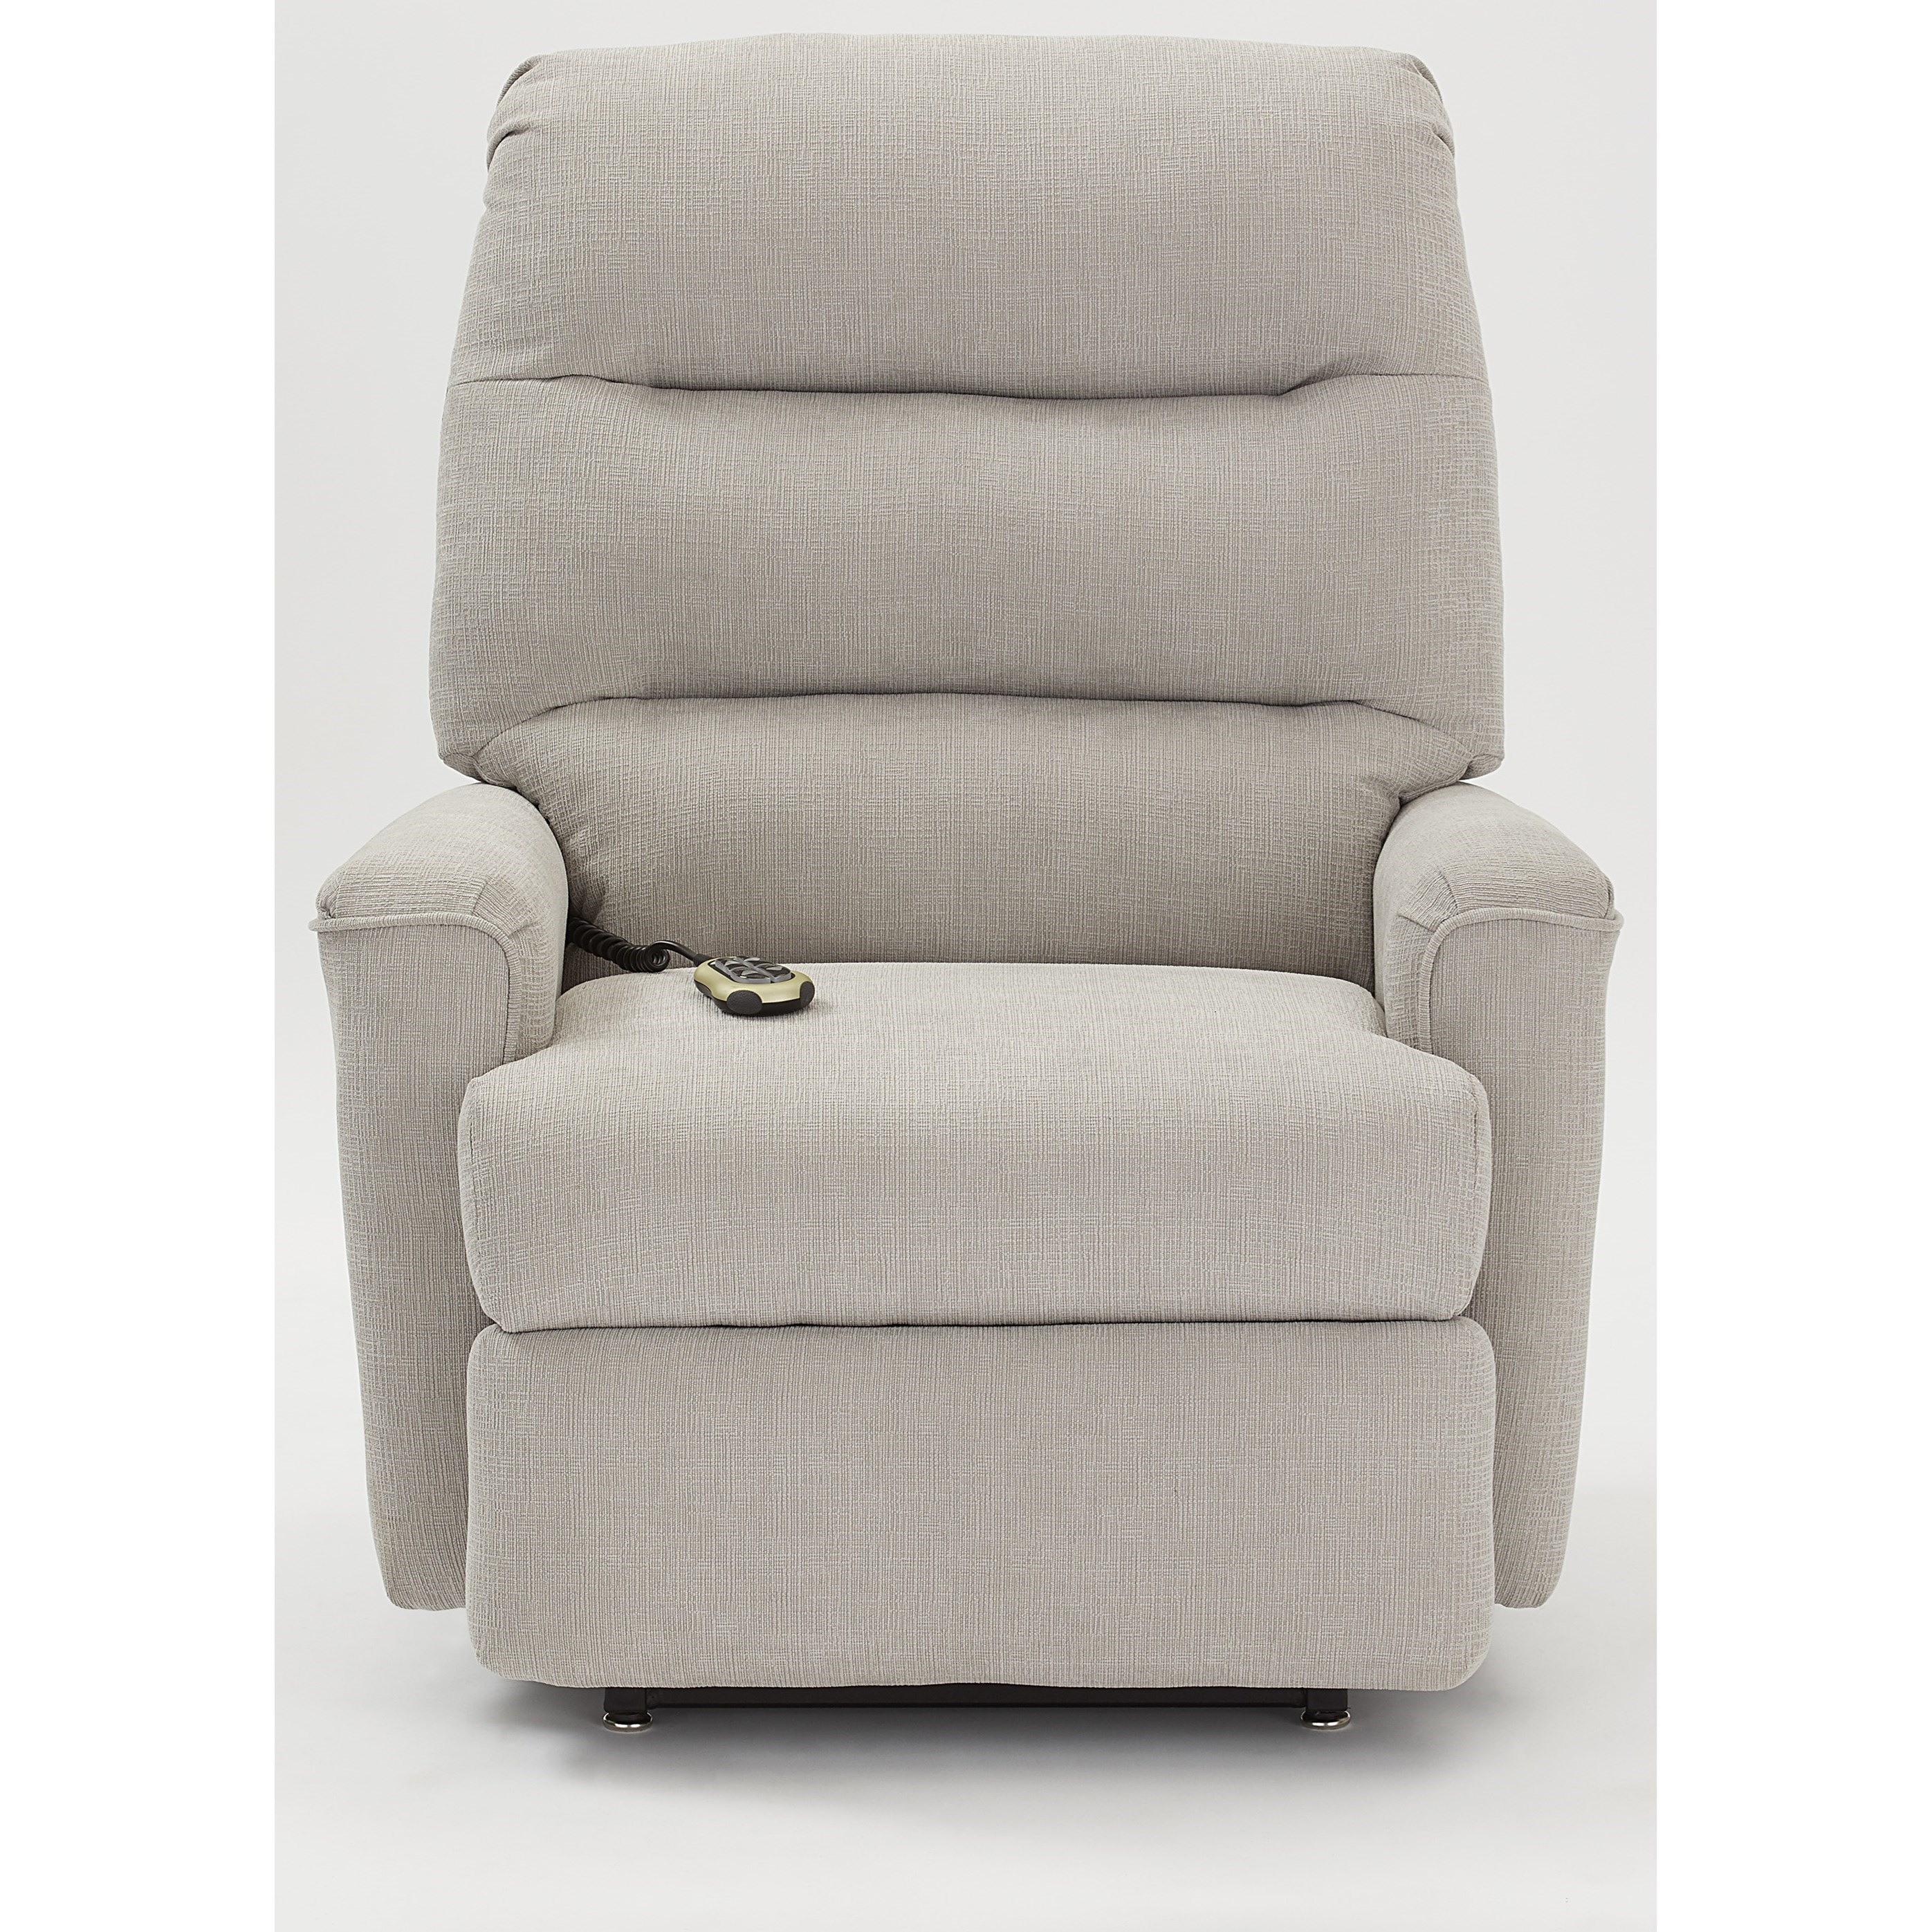 Chia Power Lift Recliner by Best Home Furnishings at Baer's Furniture